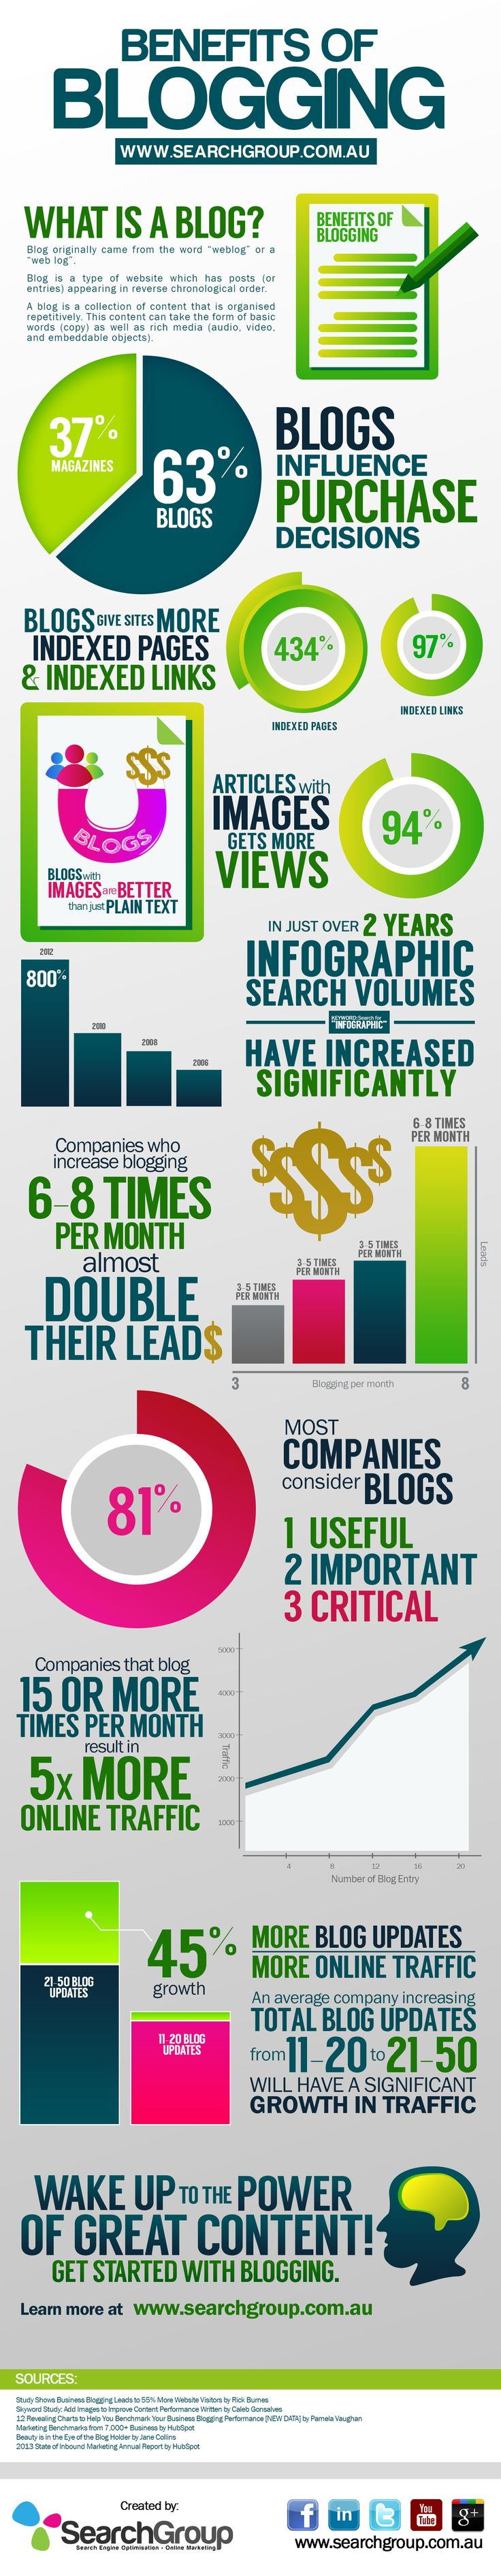 Blogging is one of the best delivery mechanisms for online marketing. Take a look at the benefits of blogging.